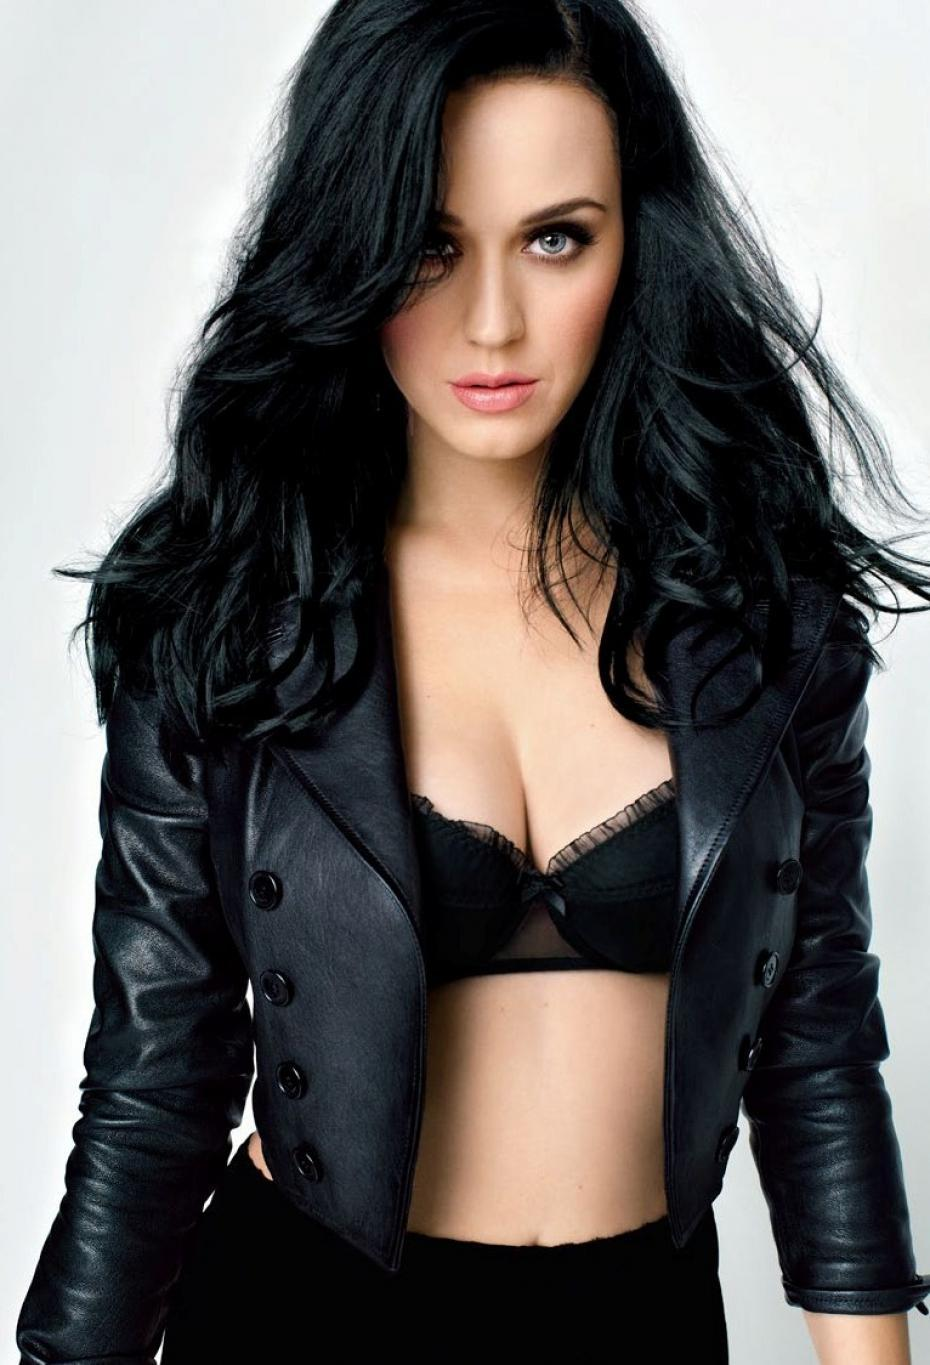 Katy Perry Katy Perry Pictures